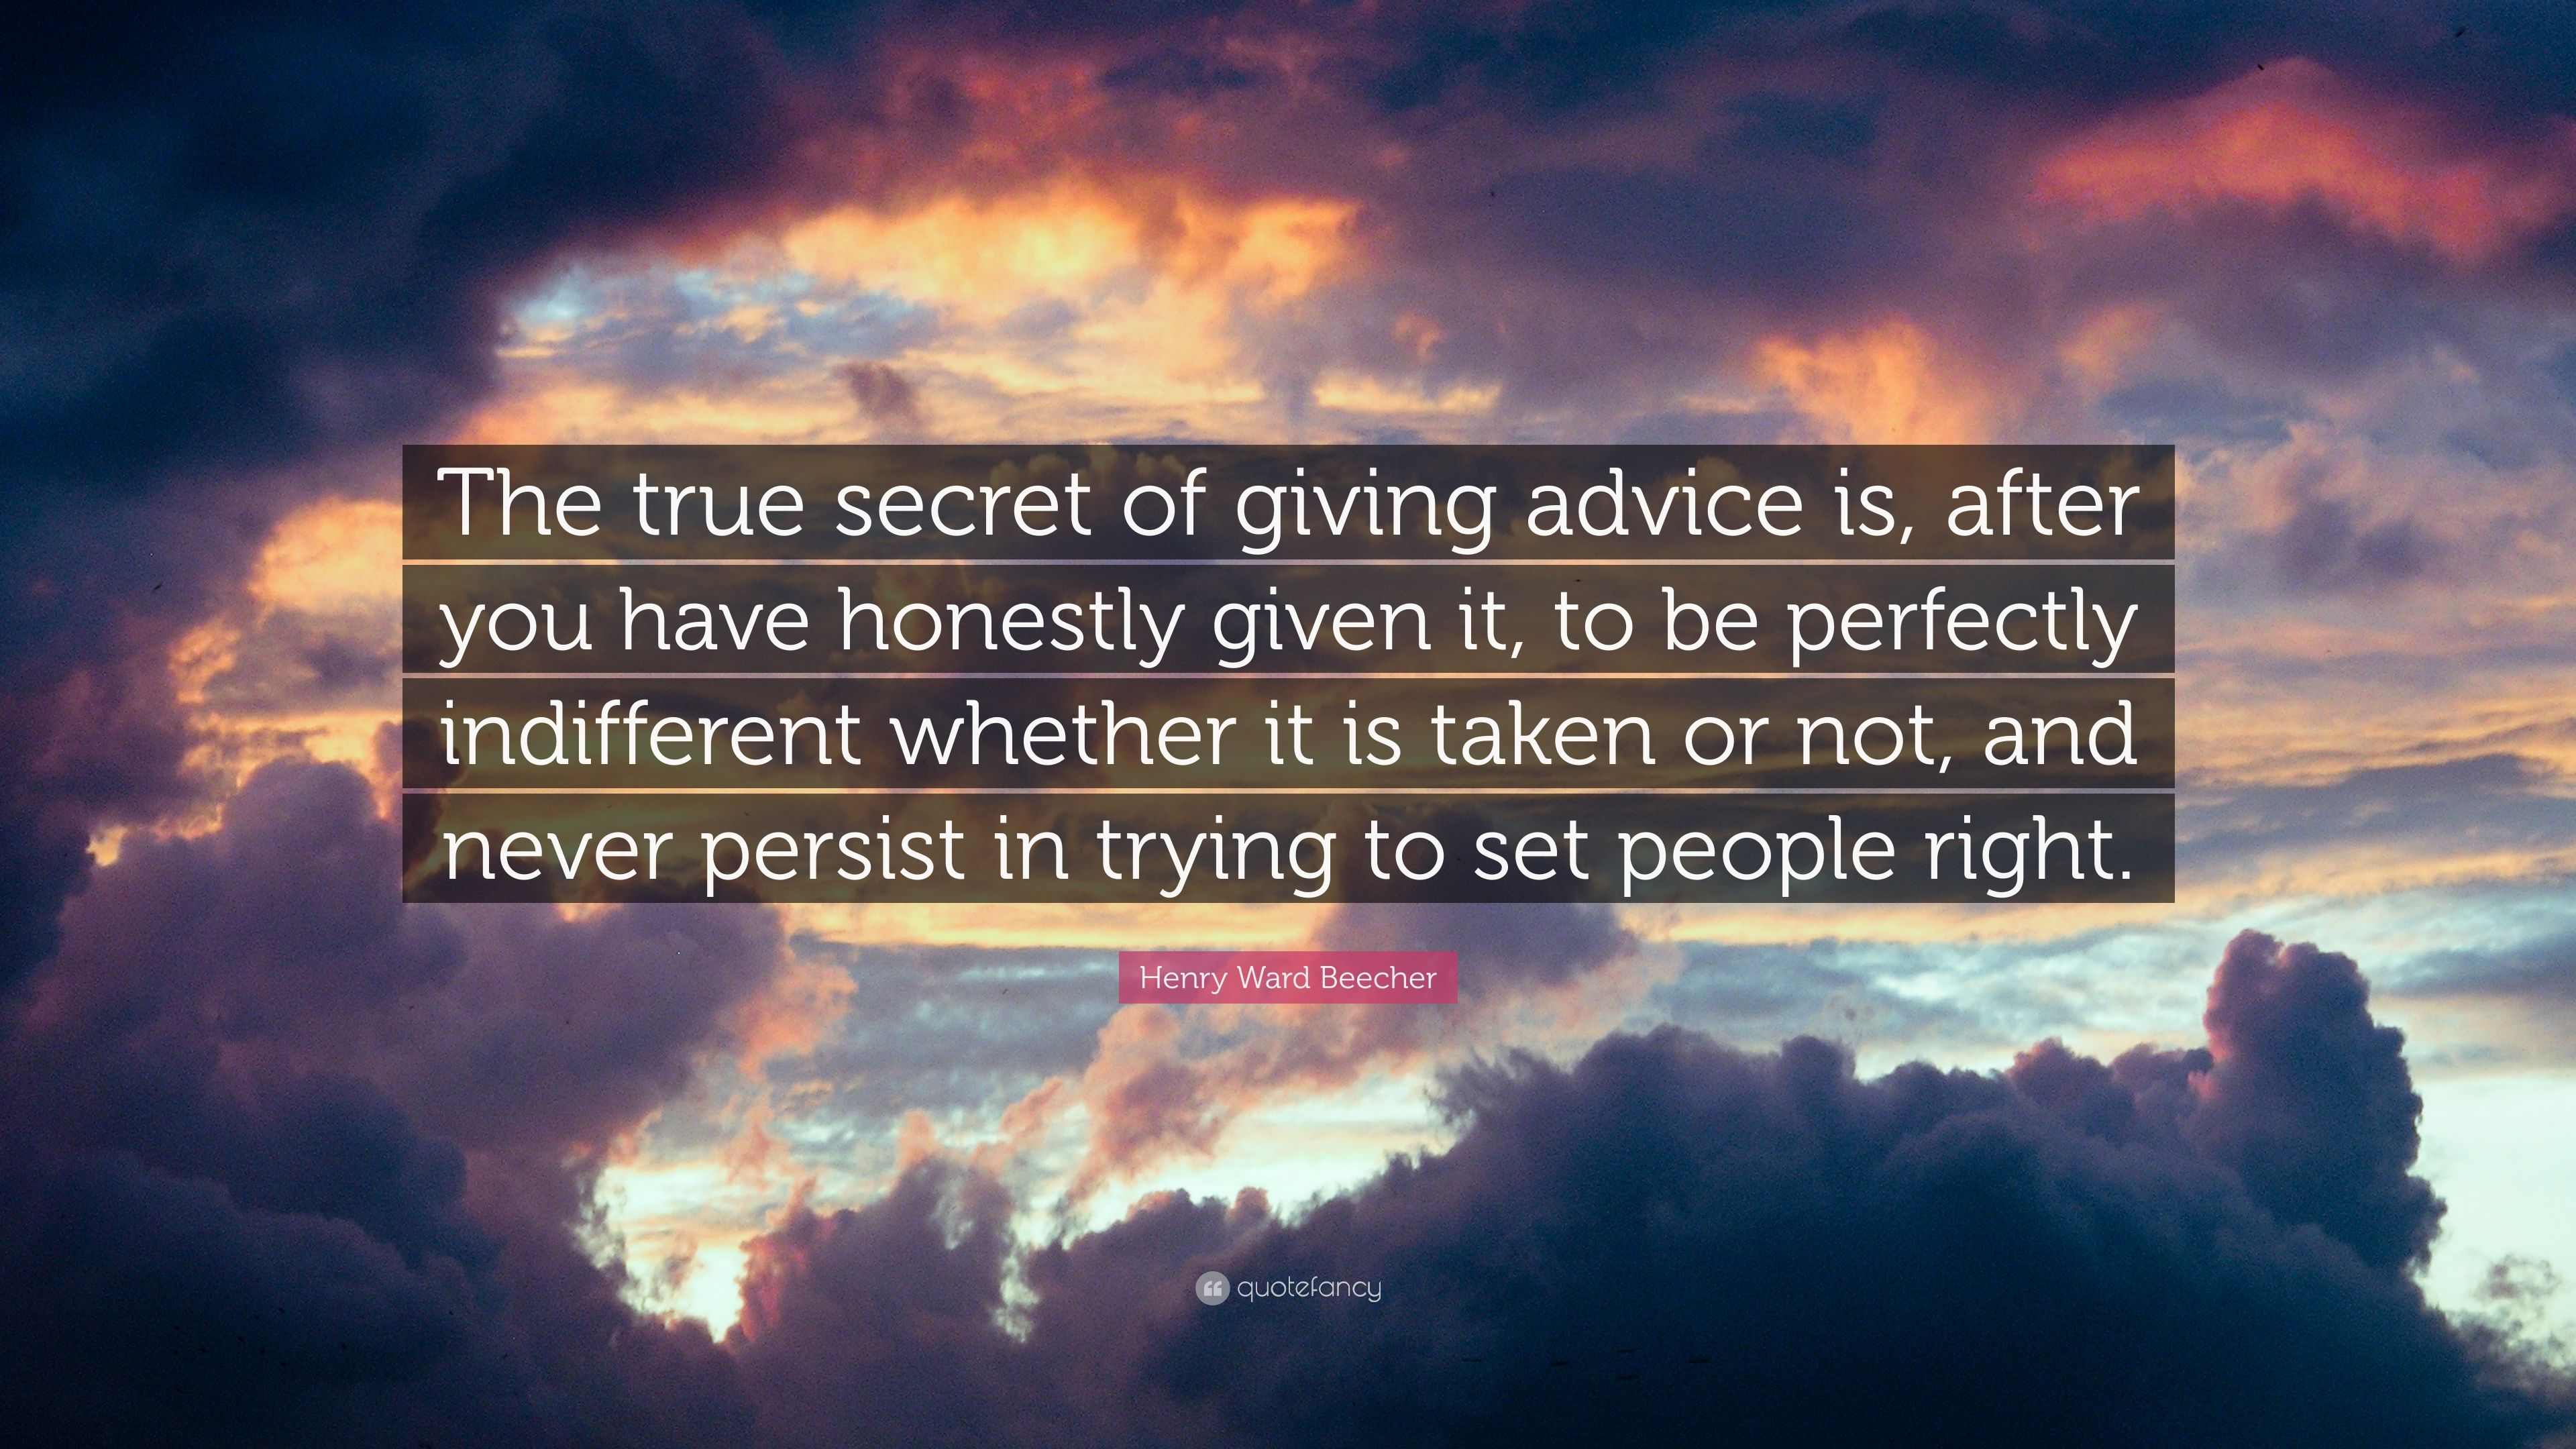 Henry Ward Beecher Quote: U201cThe True Secret Of Giving Advice Is, After You